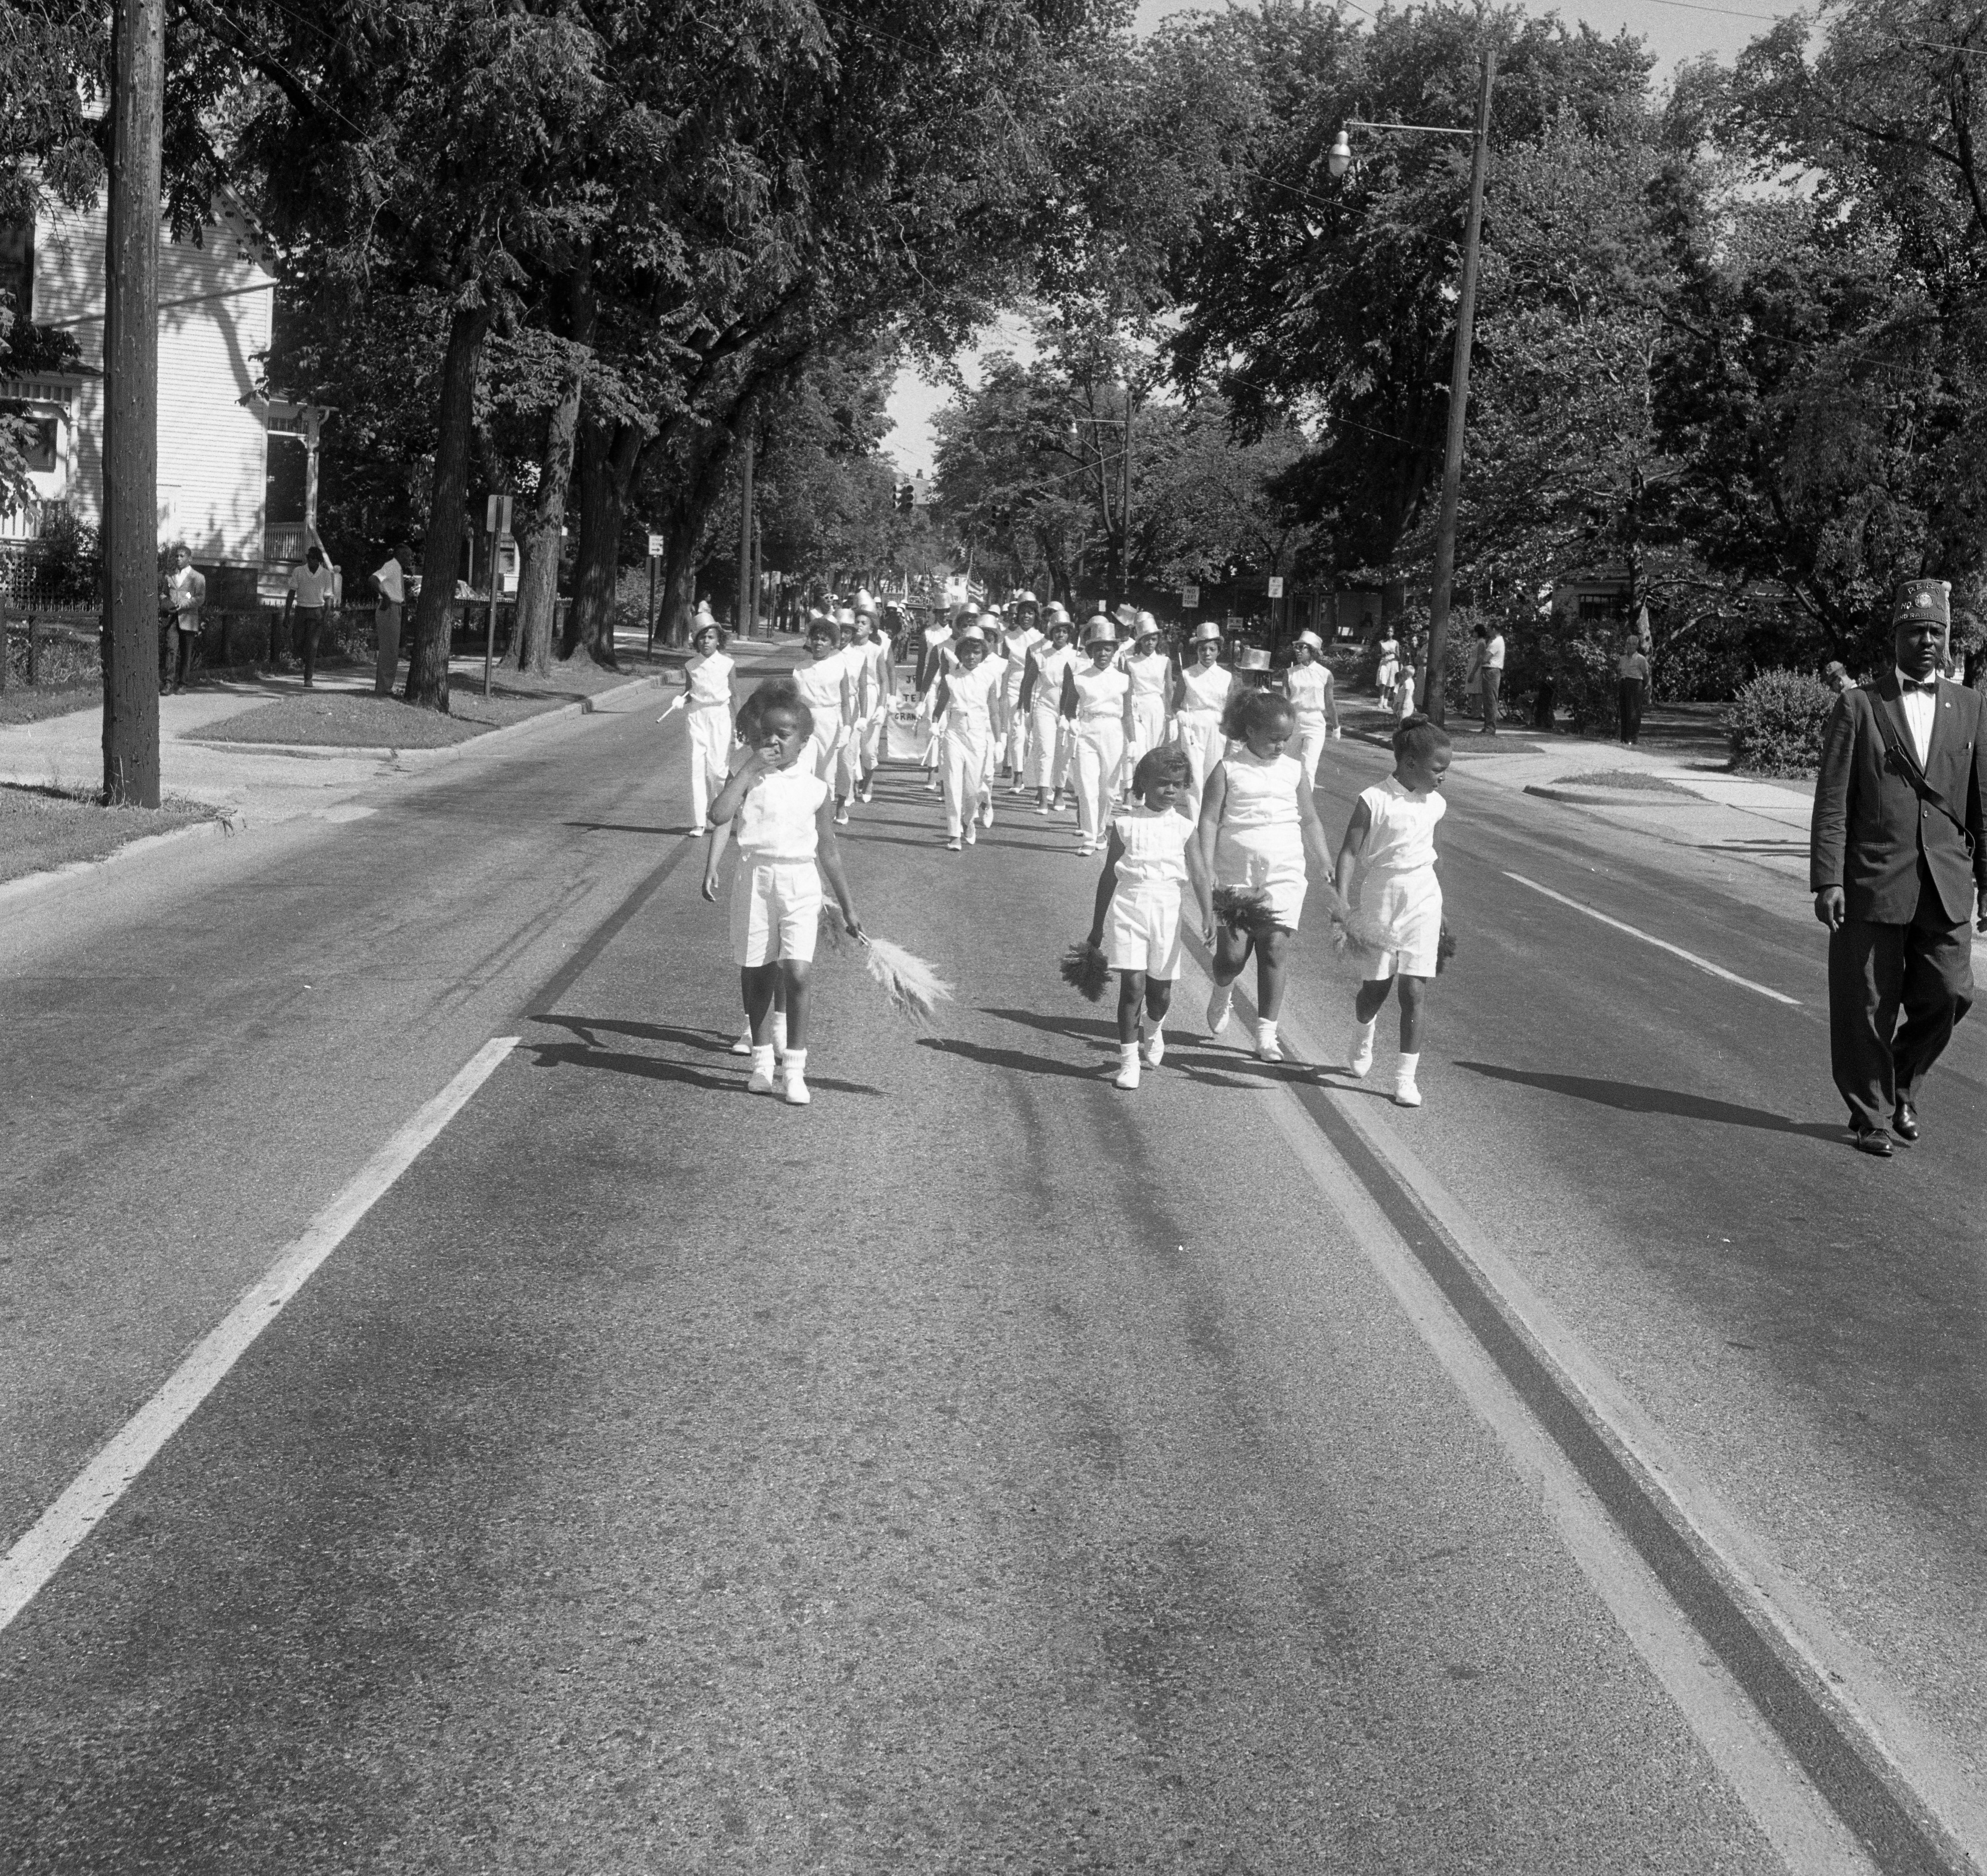 Junior Temple of Grand Rapids Marching In 26th Annual State Elks Convention Parade, June 25, 1962 image